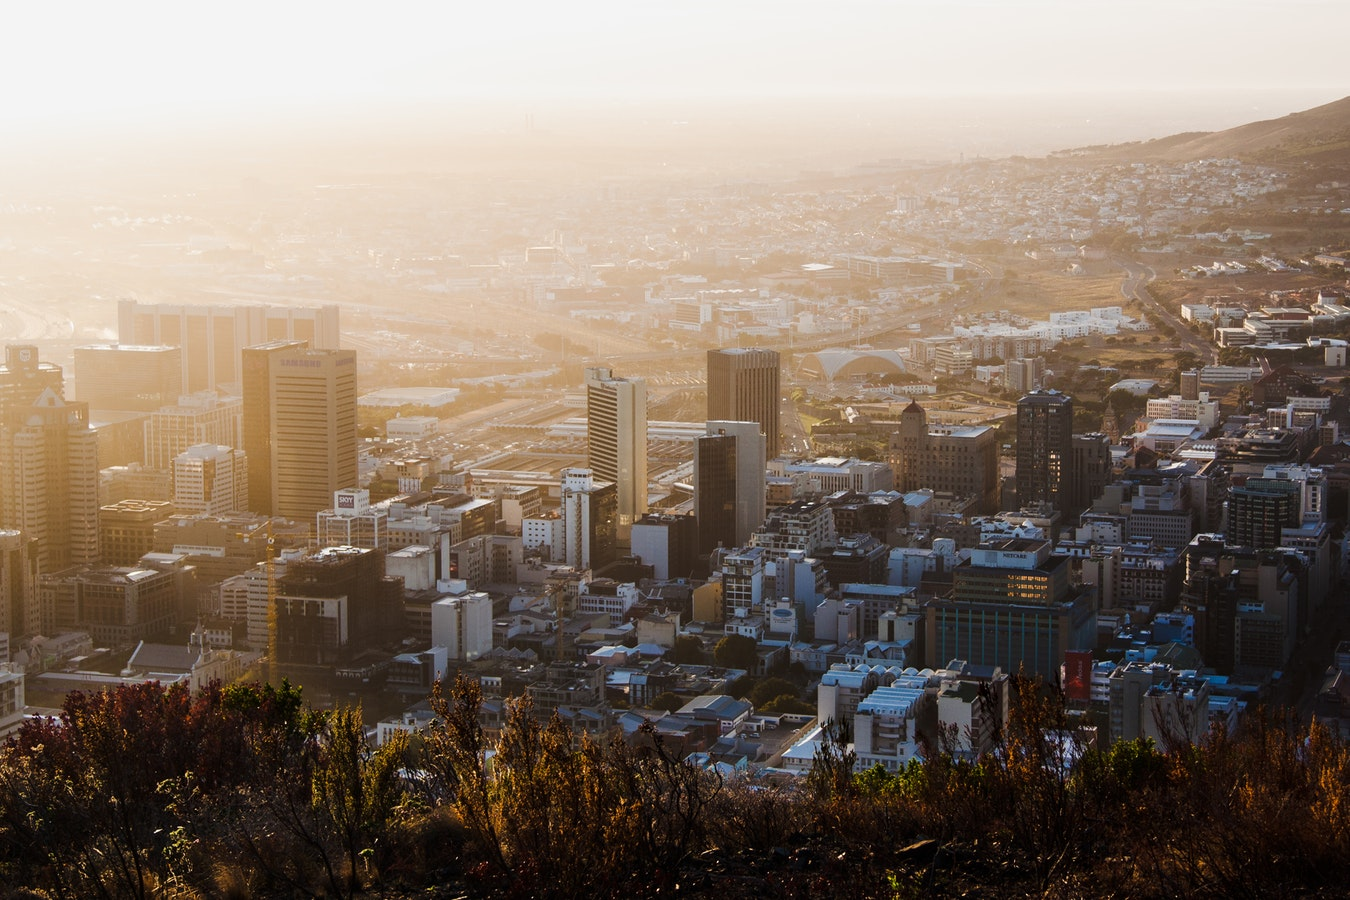 Cape Town: the most beautiful city